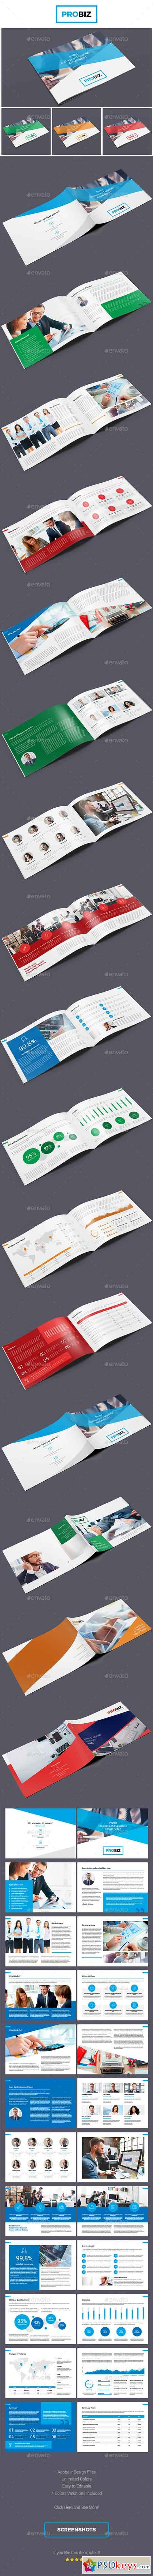 ProBiz – Business and Corporate Annual Report Horizontal 19428223